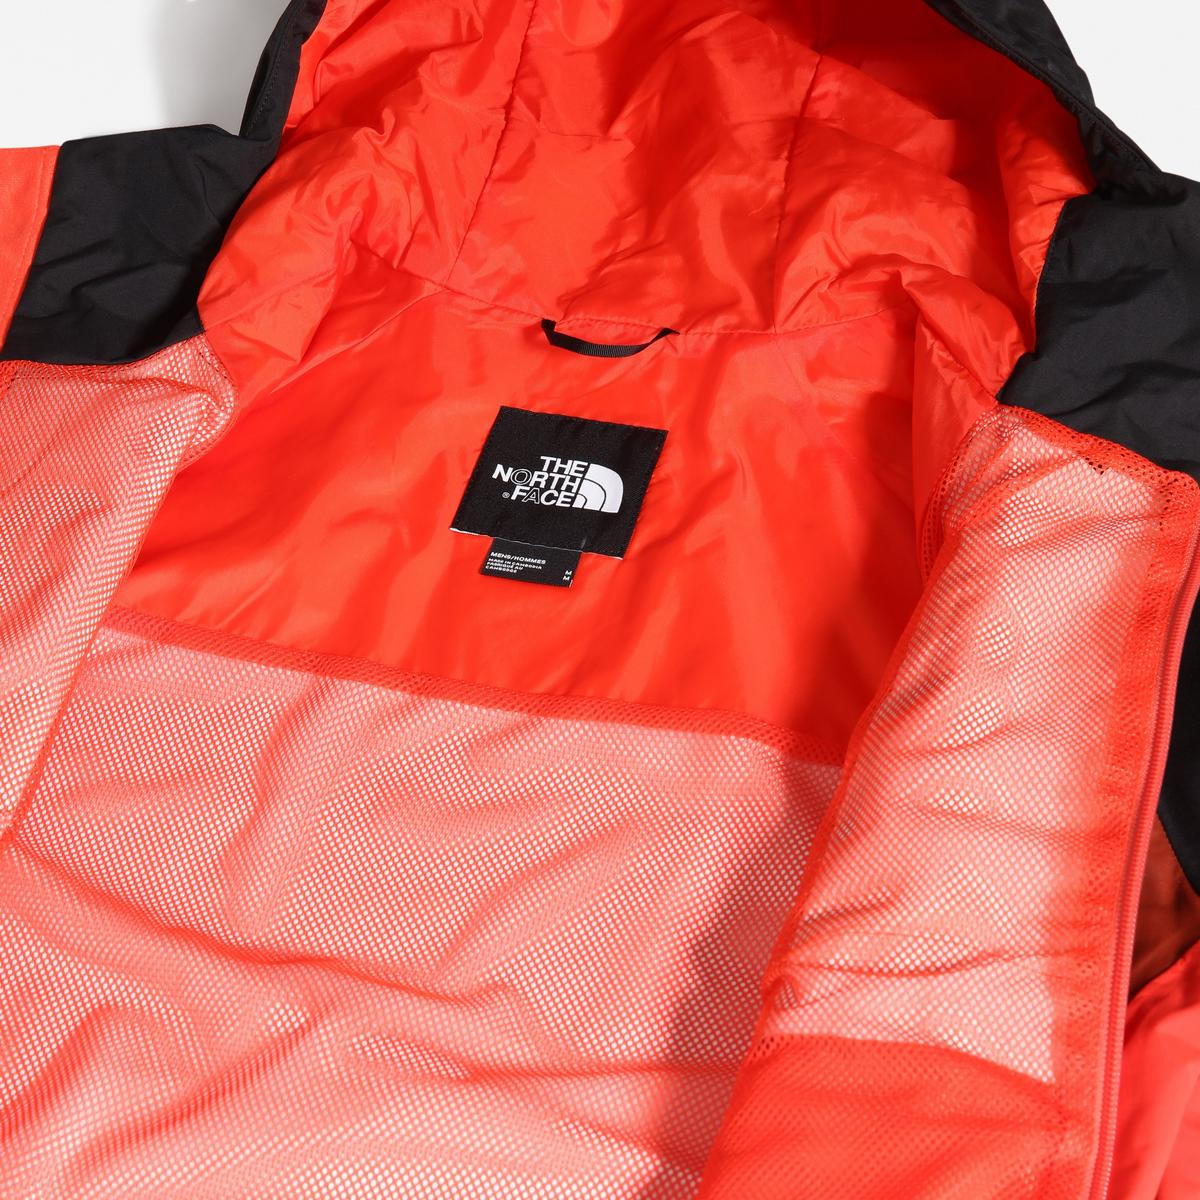 The North Face Men's Stratos Jacket - Black/Red